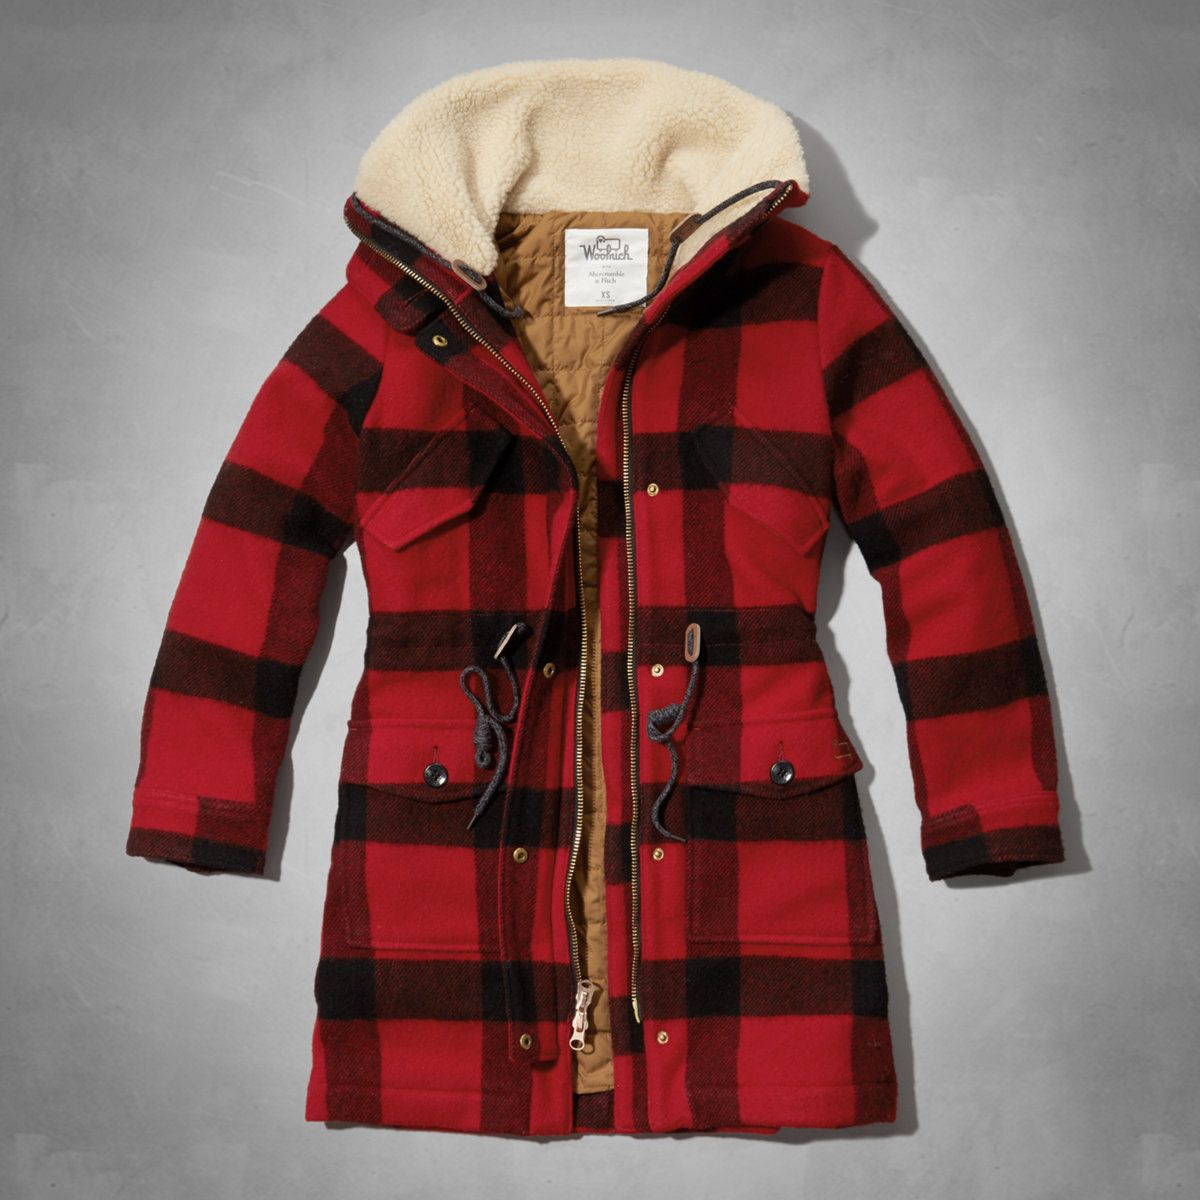 woolrich kristie plaid rain jacket. Black Bedroom Furniture Sets. Home Design Ideas